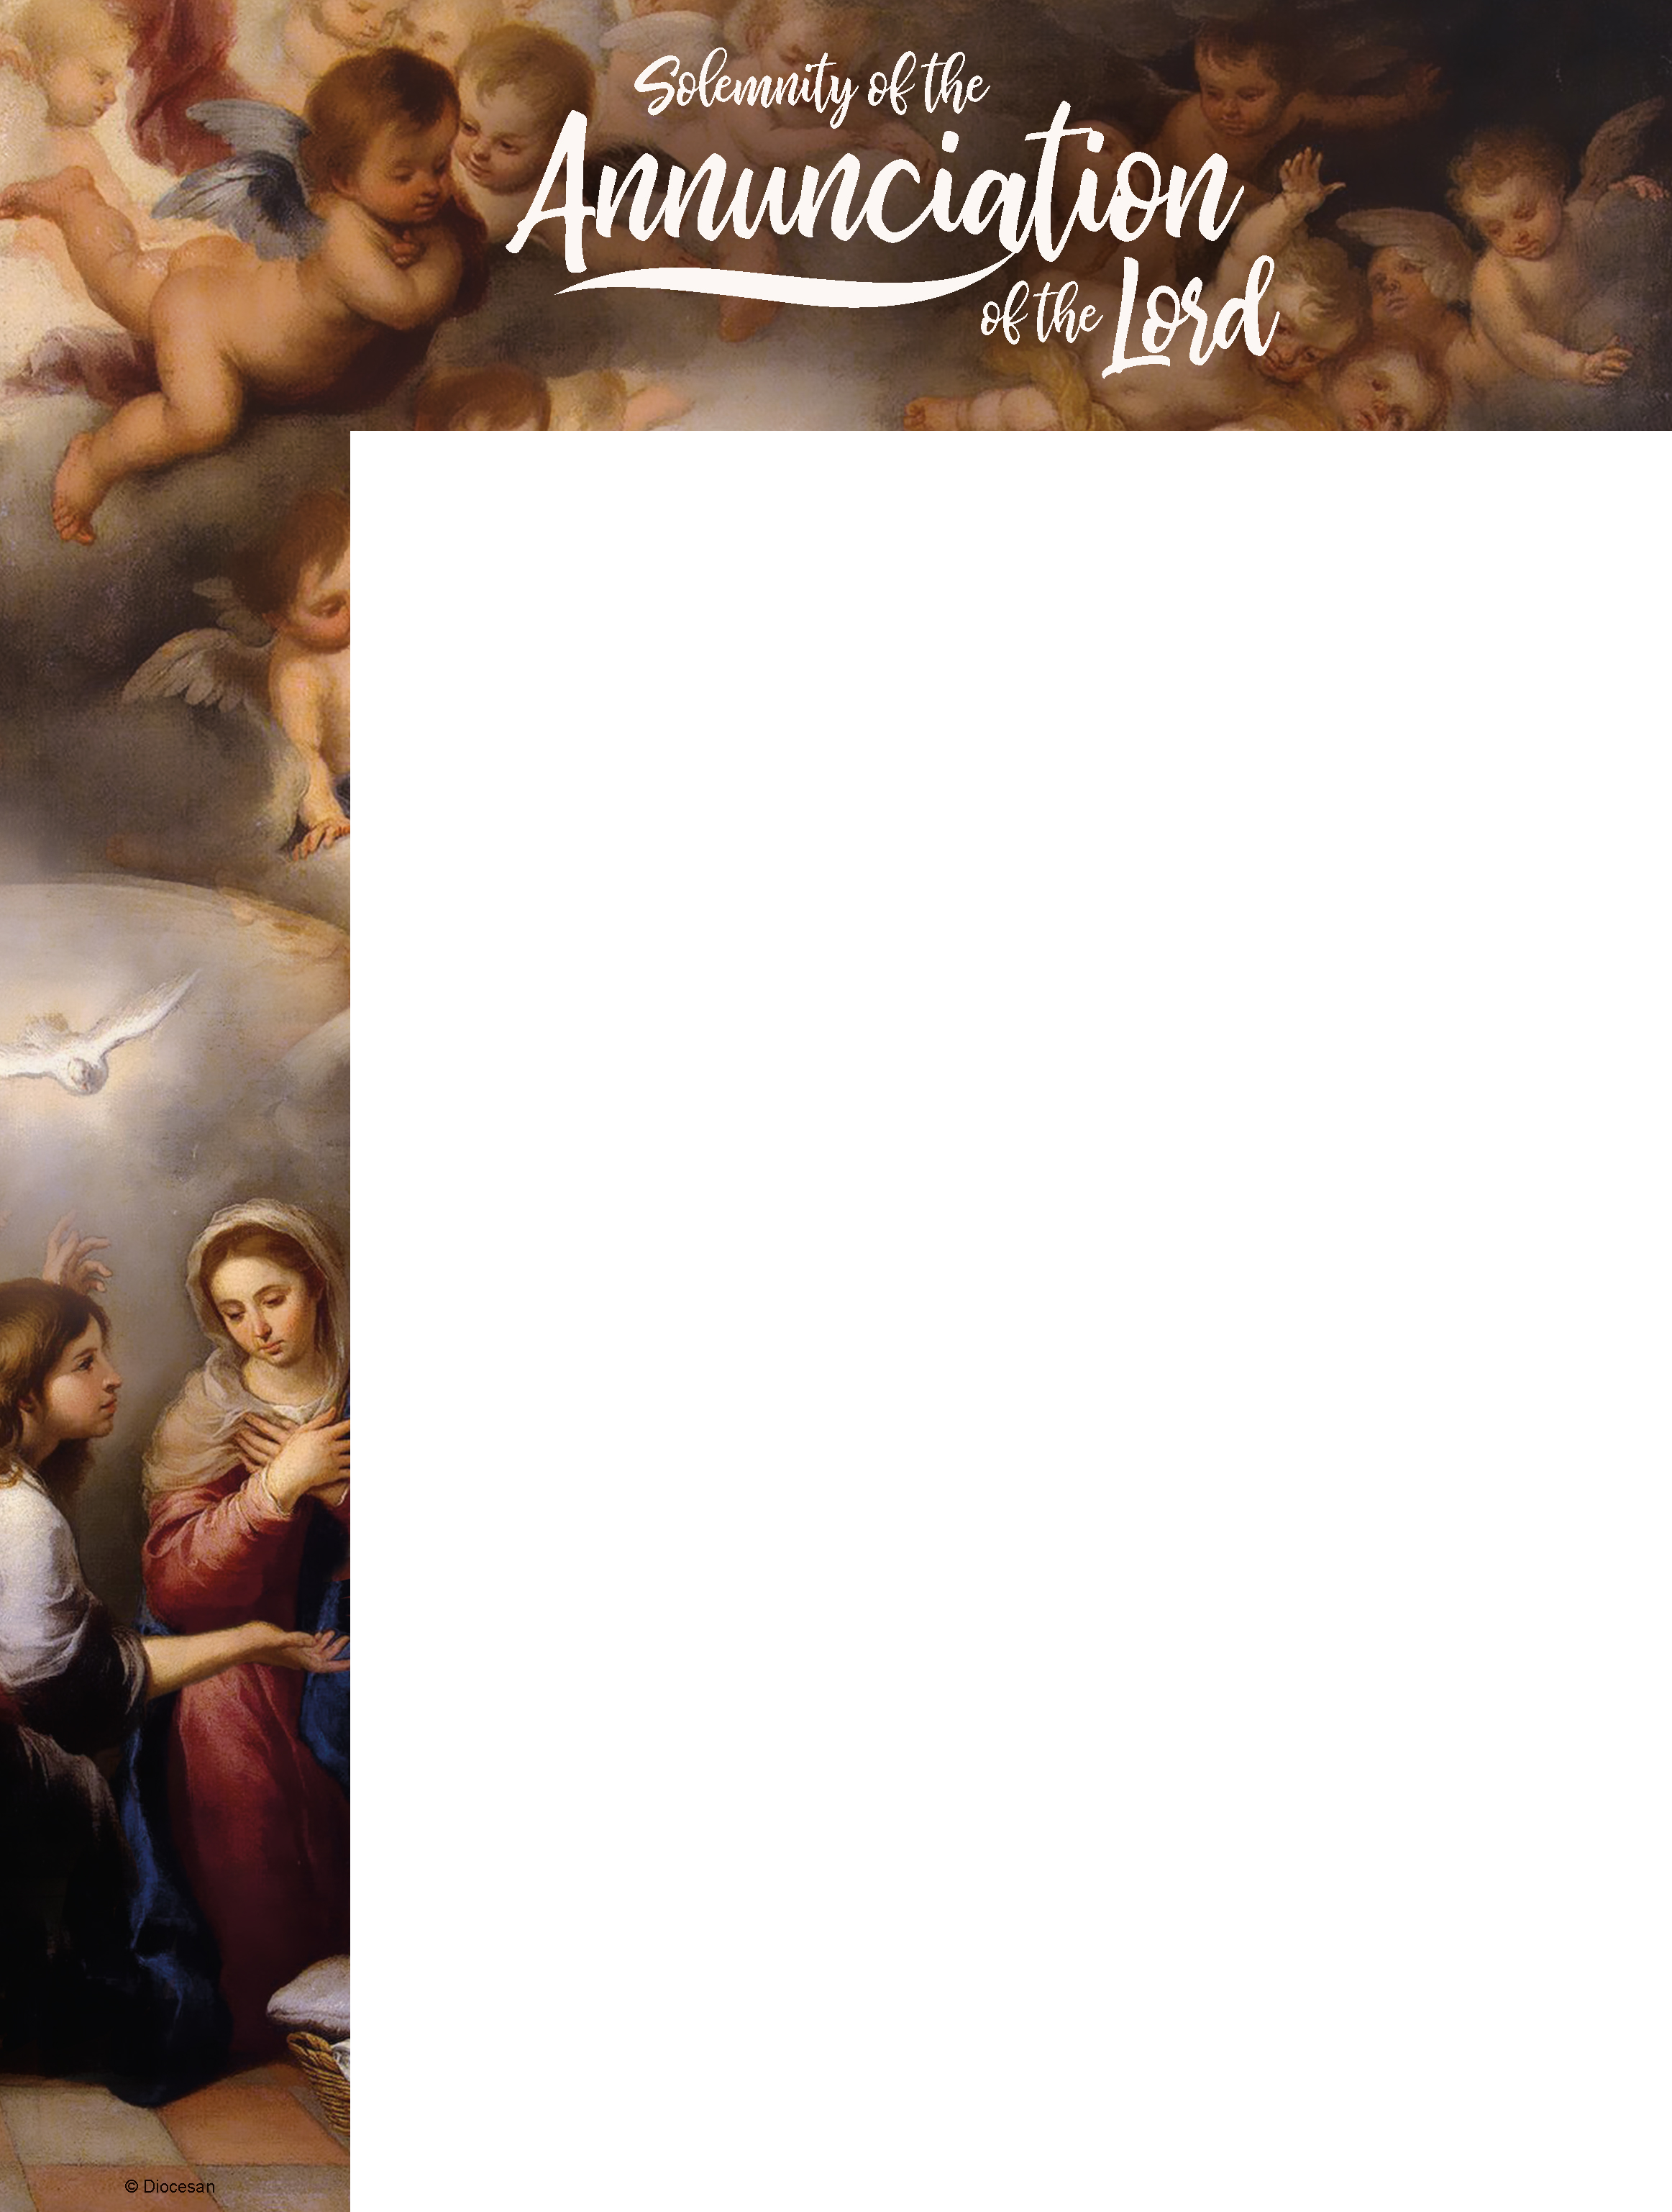 Solemnity of the Annunciation of the Lord - Wrapper